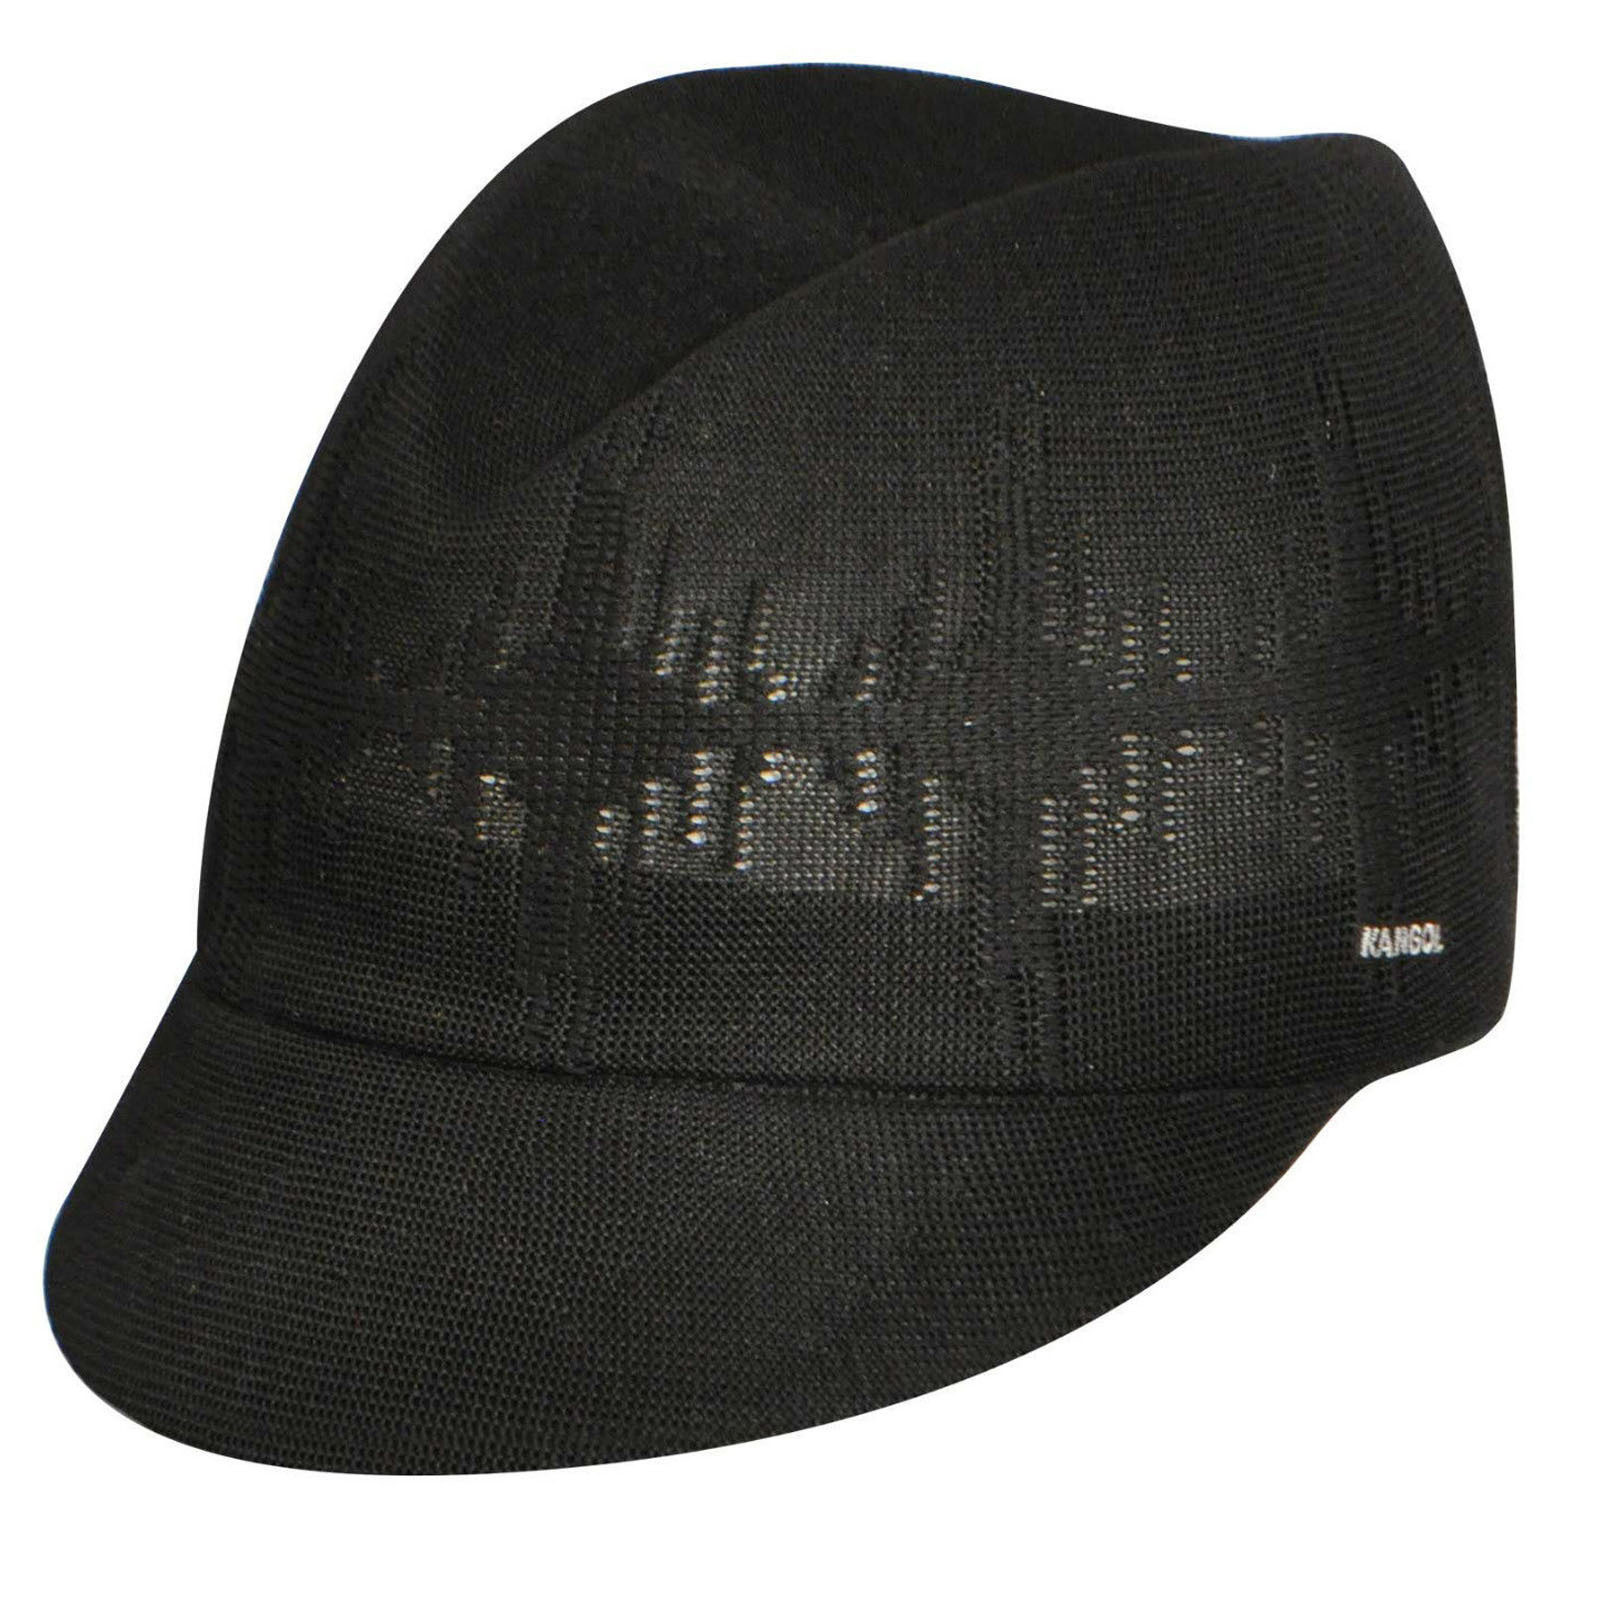 c69fadd7c KANGOL Sound Wave Colette K1701FA Hat Cap Trilby Unique Centre Dent Shape